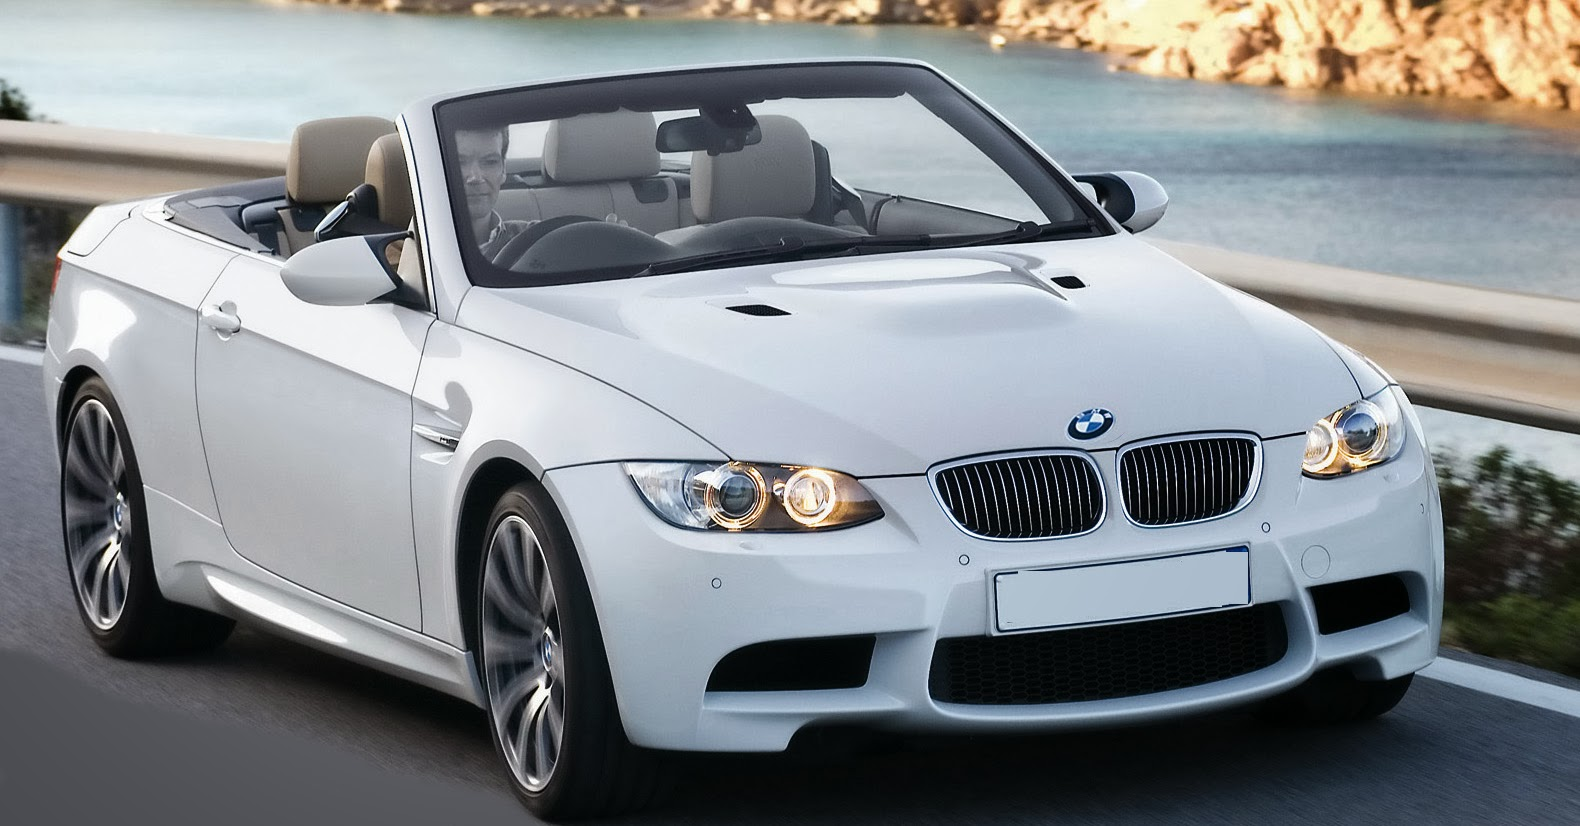 2014 bmw m3 coupe and convertible comparison techgangs. Black Bedroom Furniture Sets. Home Design Ideas